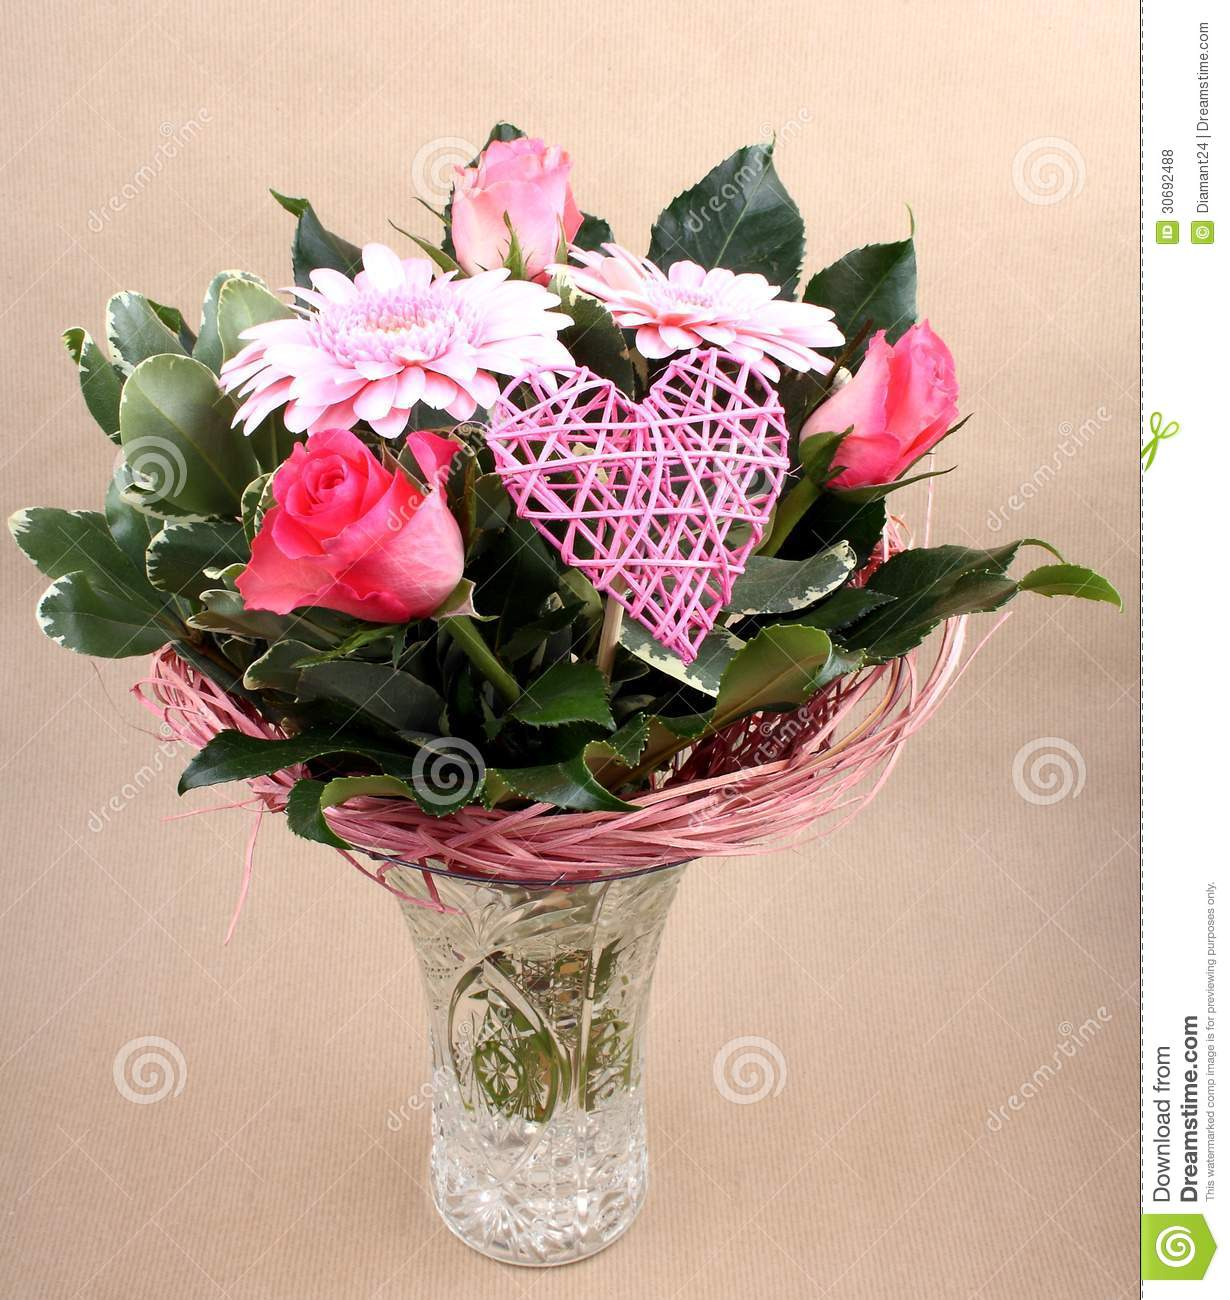 Beautiful flower bouquet with roses and heart in vase stock photo beautiful flower bouquet with roses and heart in vase izmirmasajfo